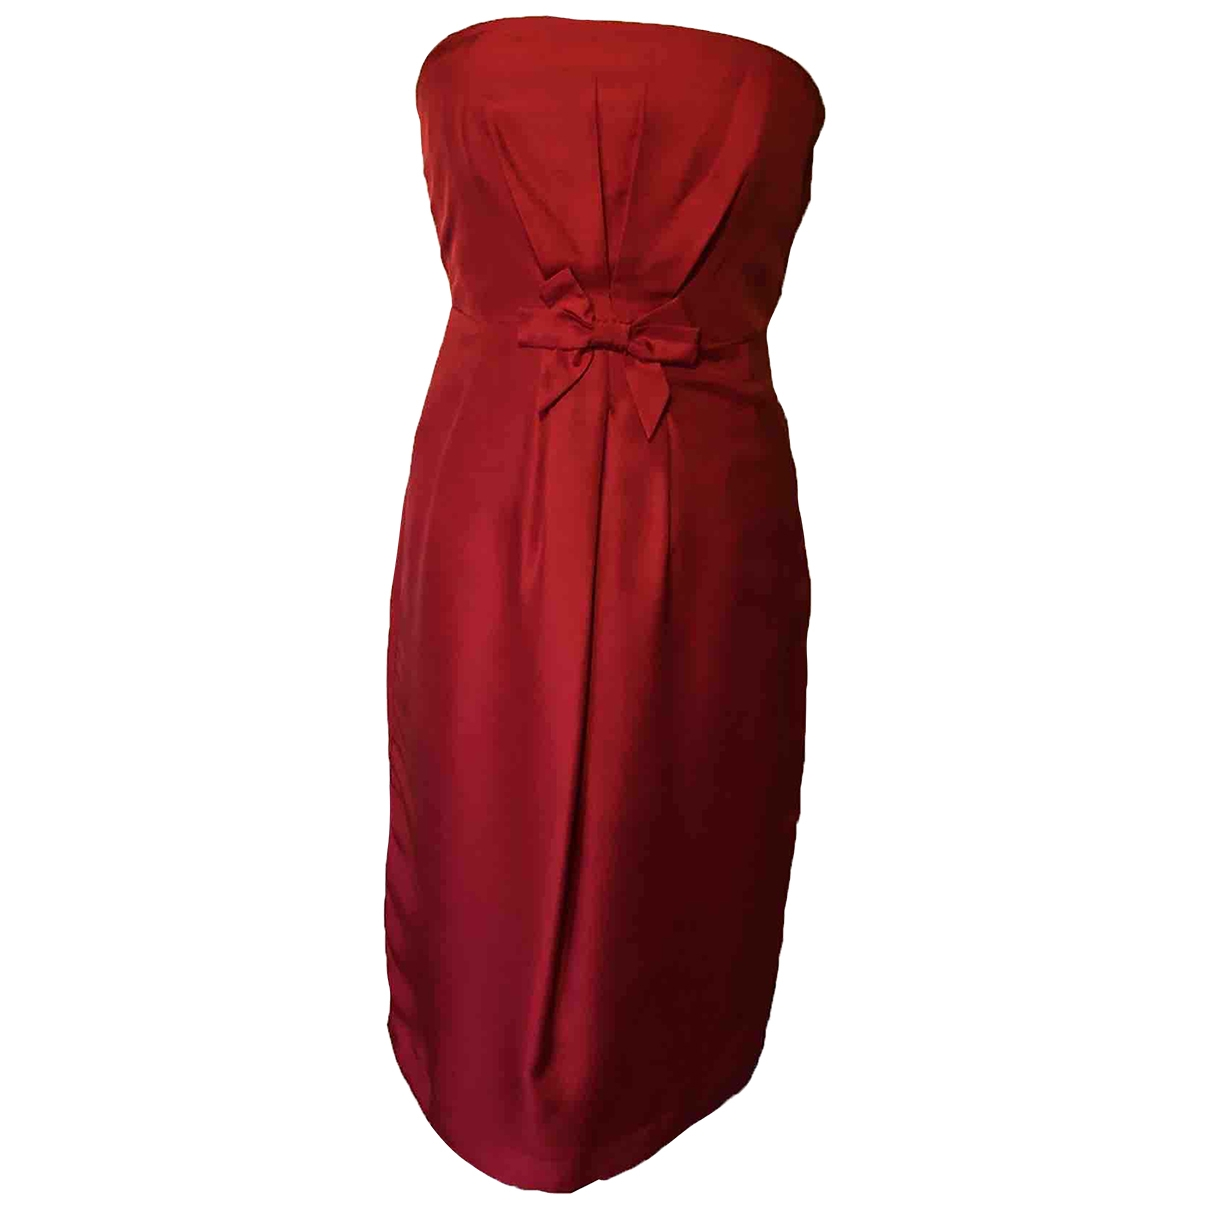 Lk Bennett \N Red Silk dress for Women 10 UK